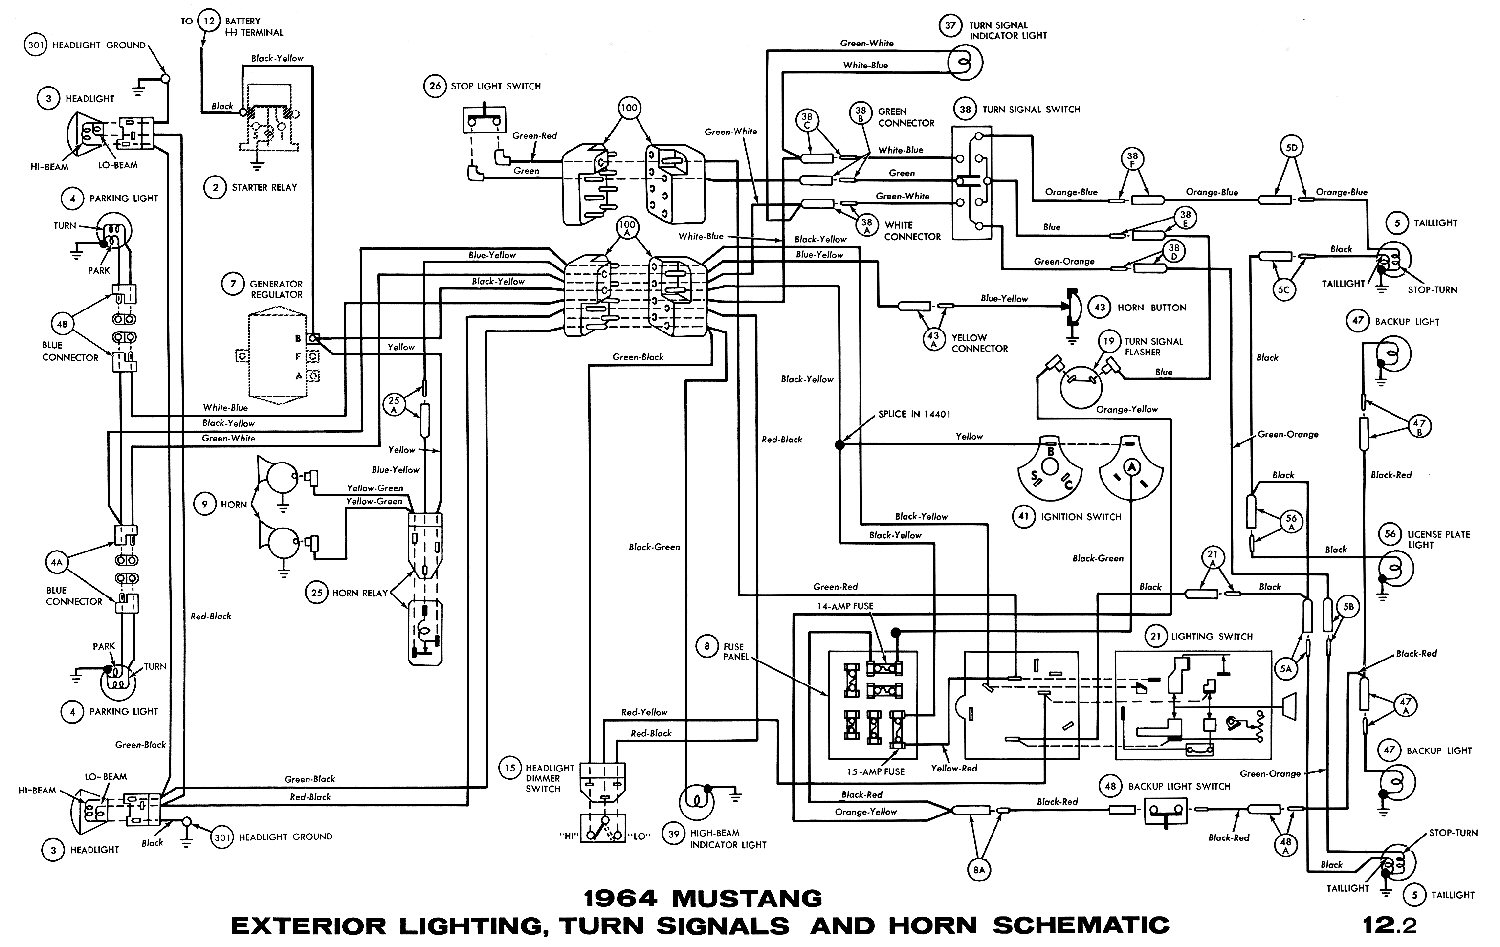 1964i 1969 mustang wiring diagram 1969 ranchero wiring diagram \u2022 wiring  at fashall.co